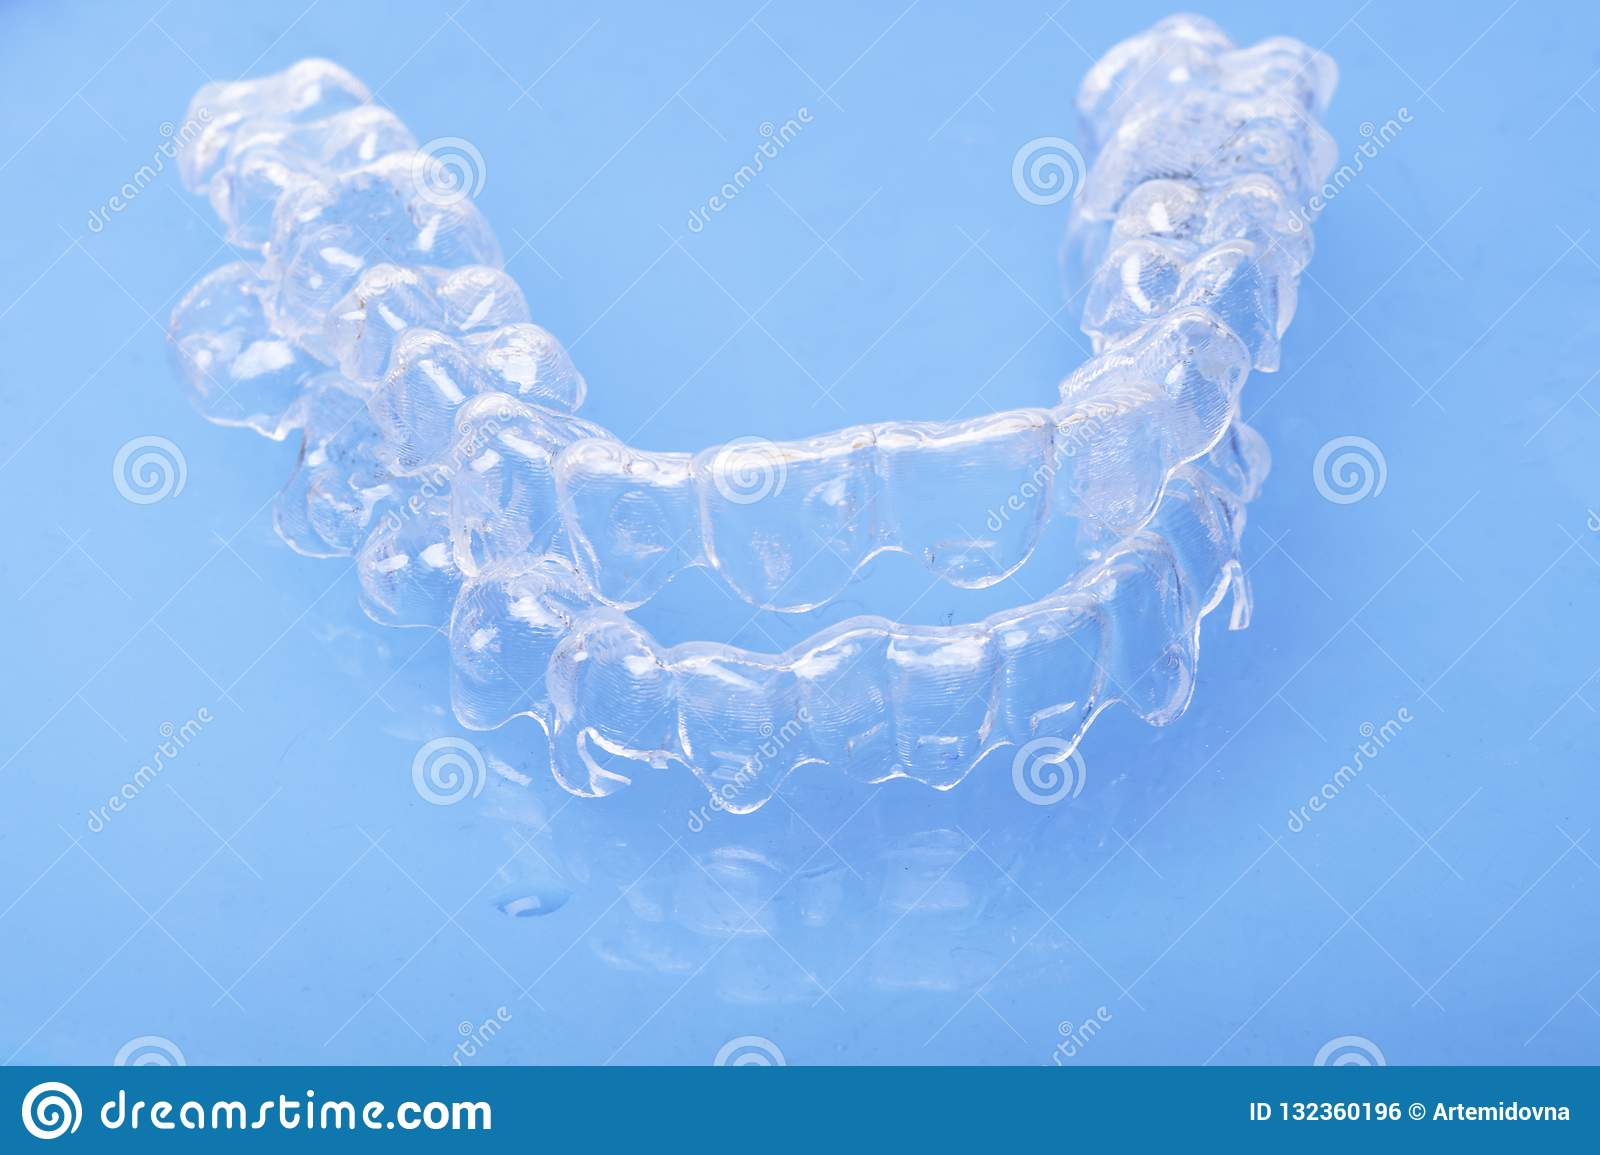 Invisible dental teeth brackets tooth aligners plastic braces dentistry retainers to straighten teeth